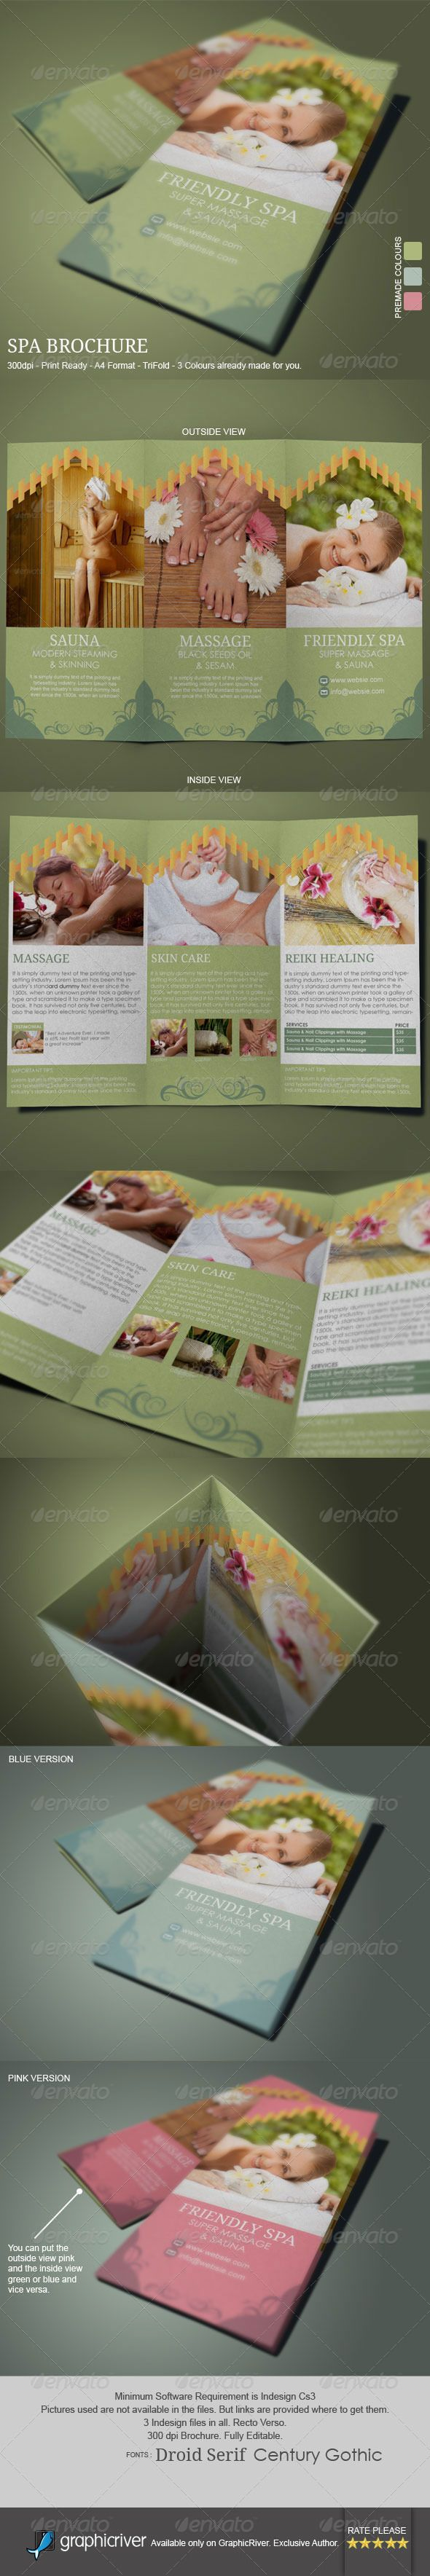 Spa Brochure Template  Brochure Template Wellness Spa And Brochures